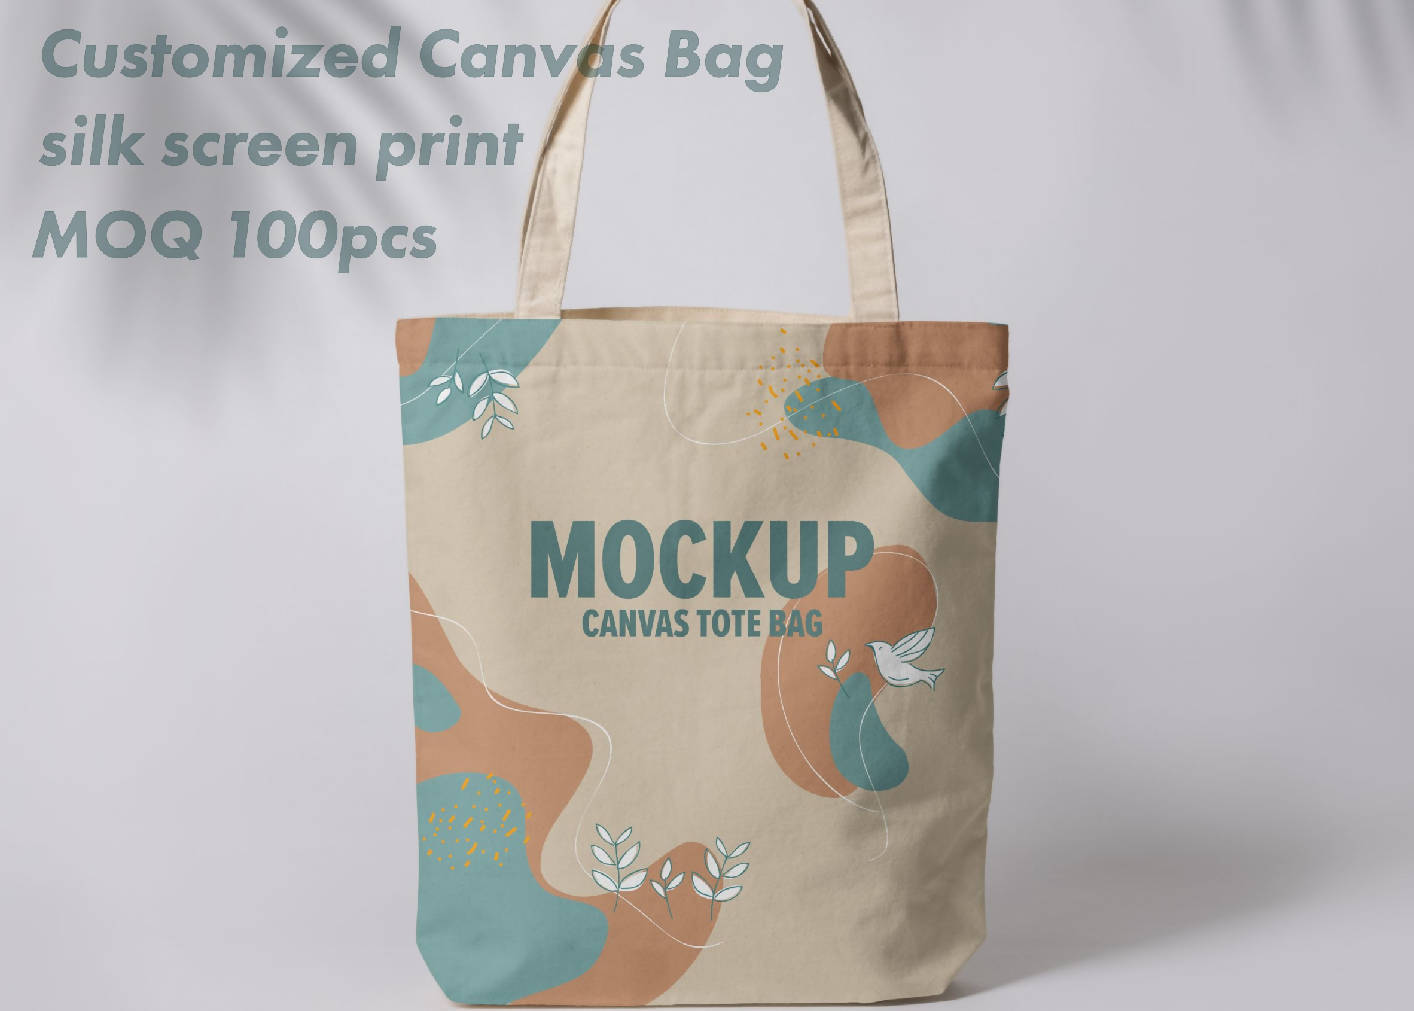 Canvas Bag with silk screen print